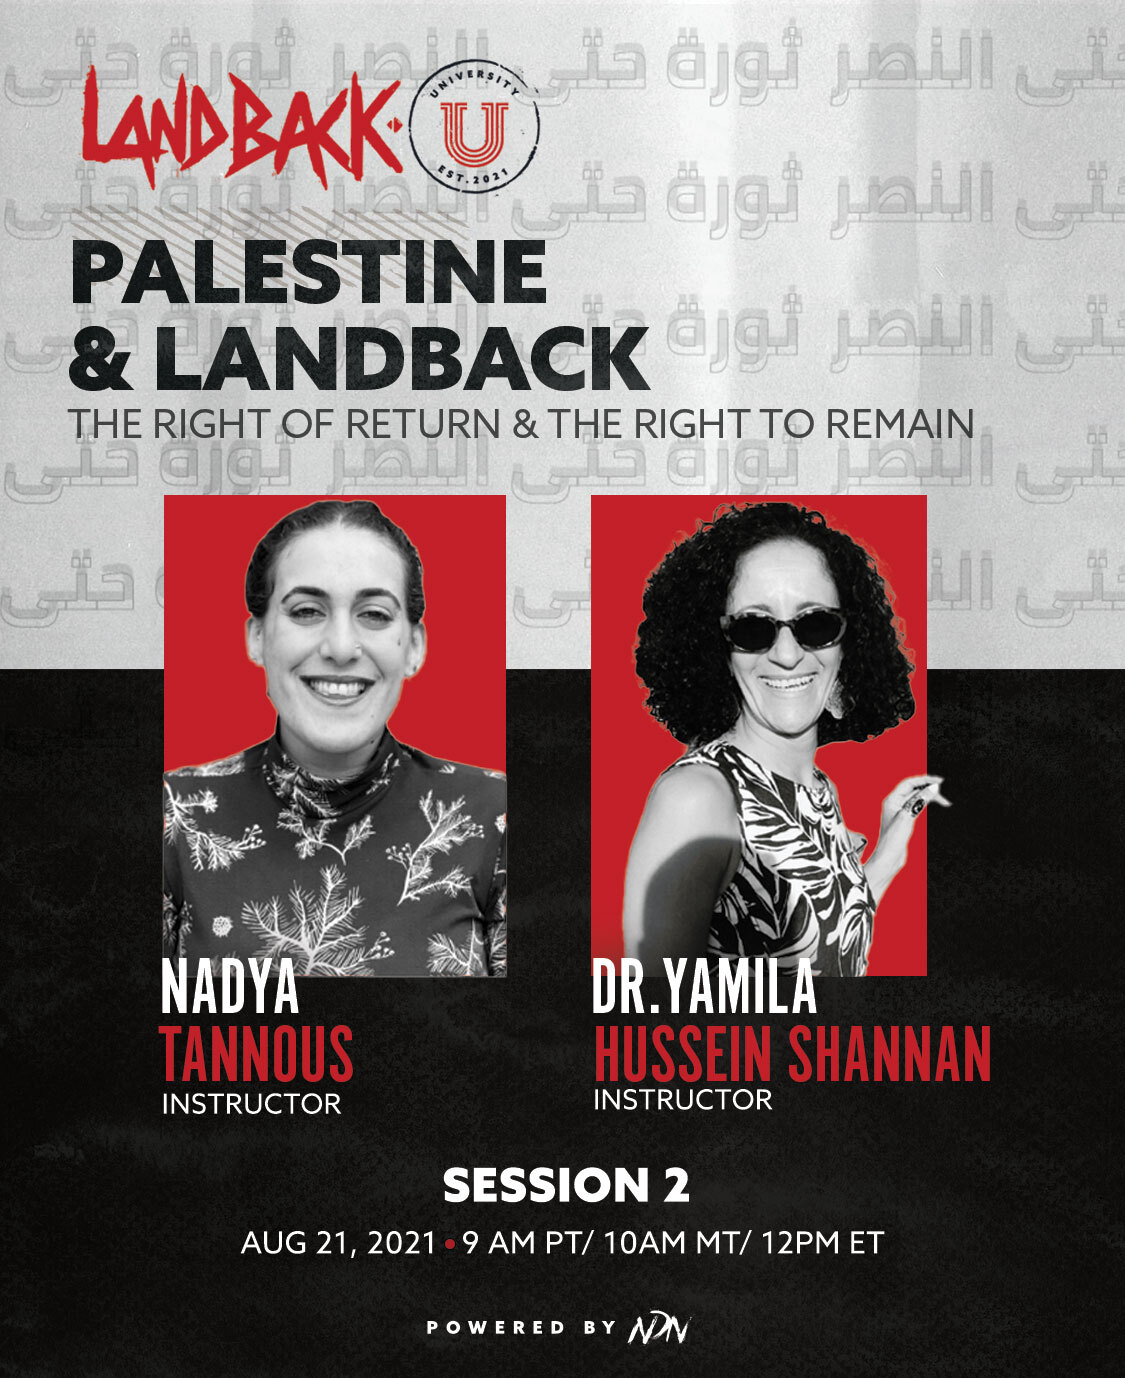 Landback U: Palestine and Landback - The right of return and the right to remain promo image. Featuring Sandra Tamari and Lenna Zahran Nasr. Session 1 is August 14, 2021 at 1pm PT, 2PM MST, 4PM EST. Powered by NDN.